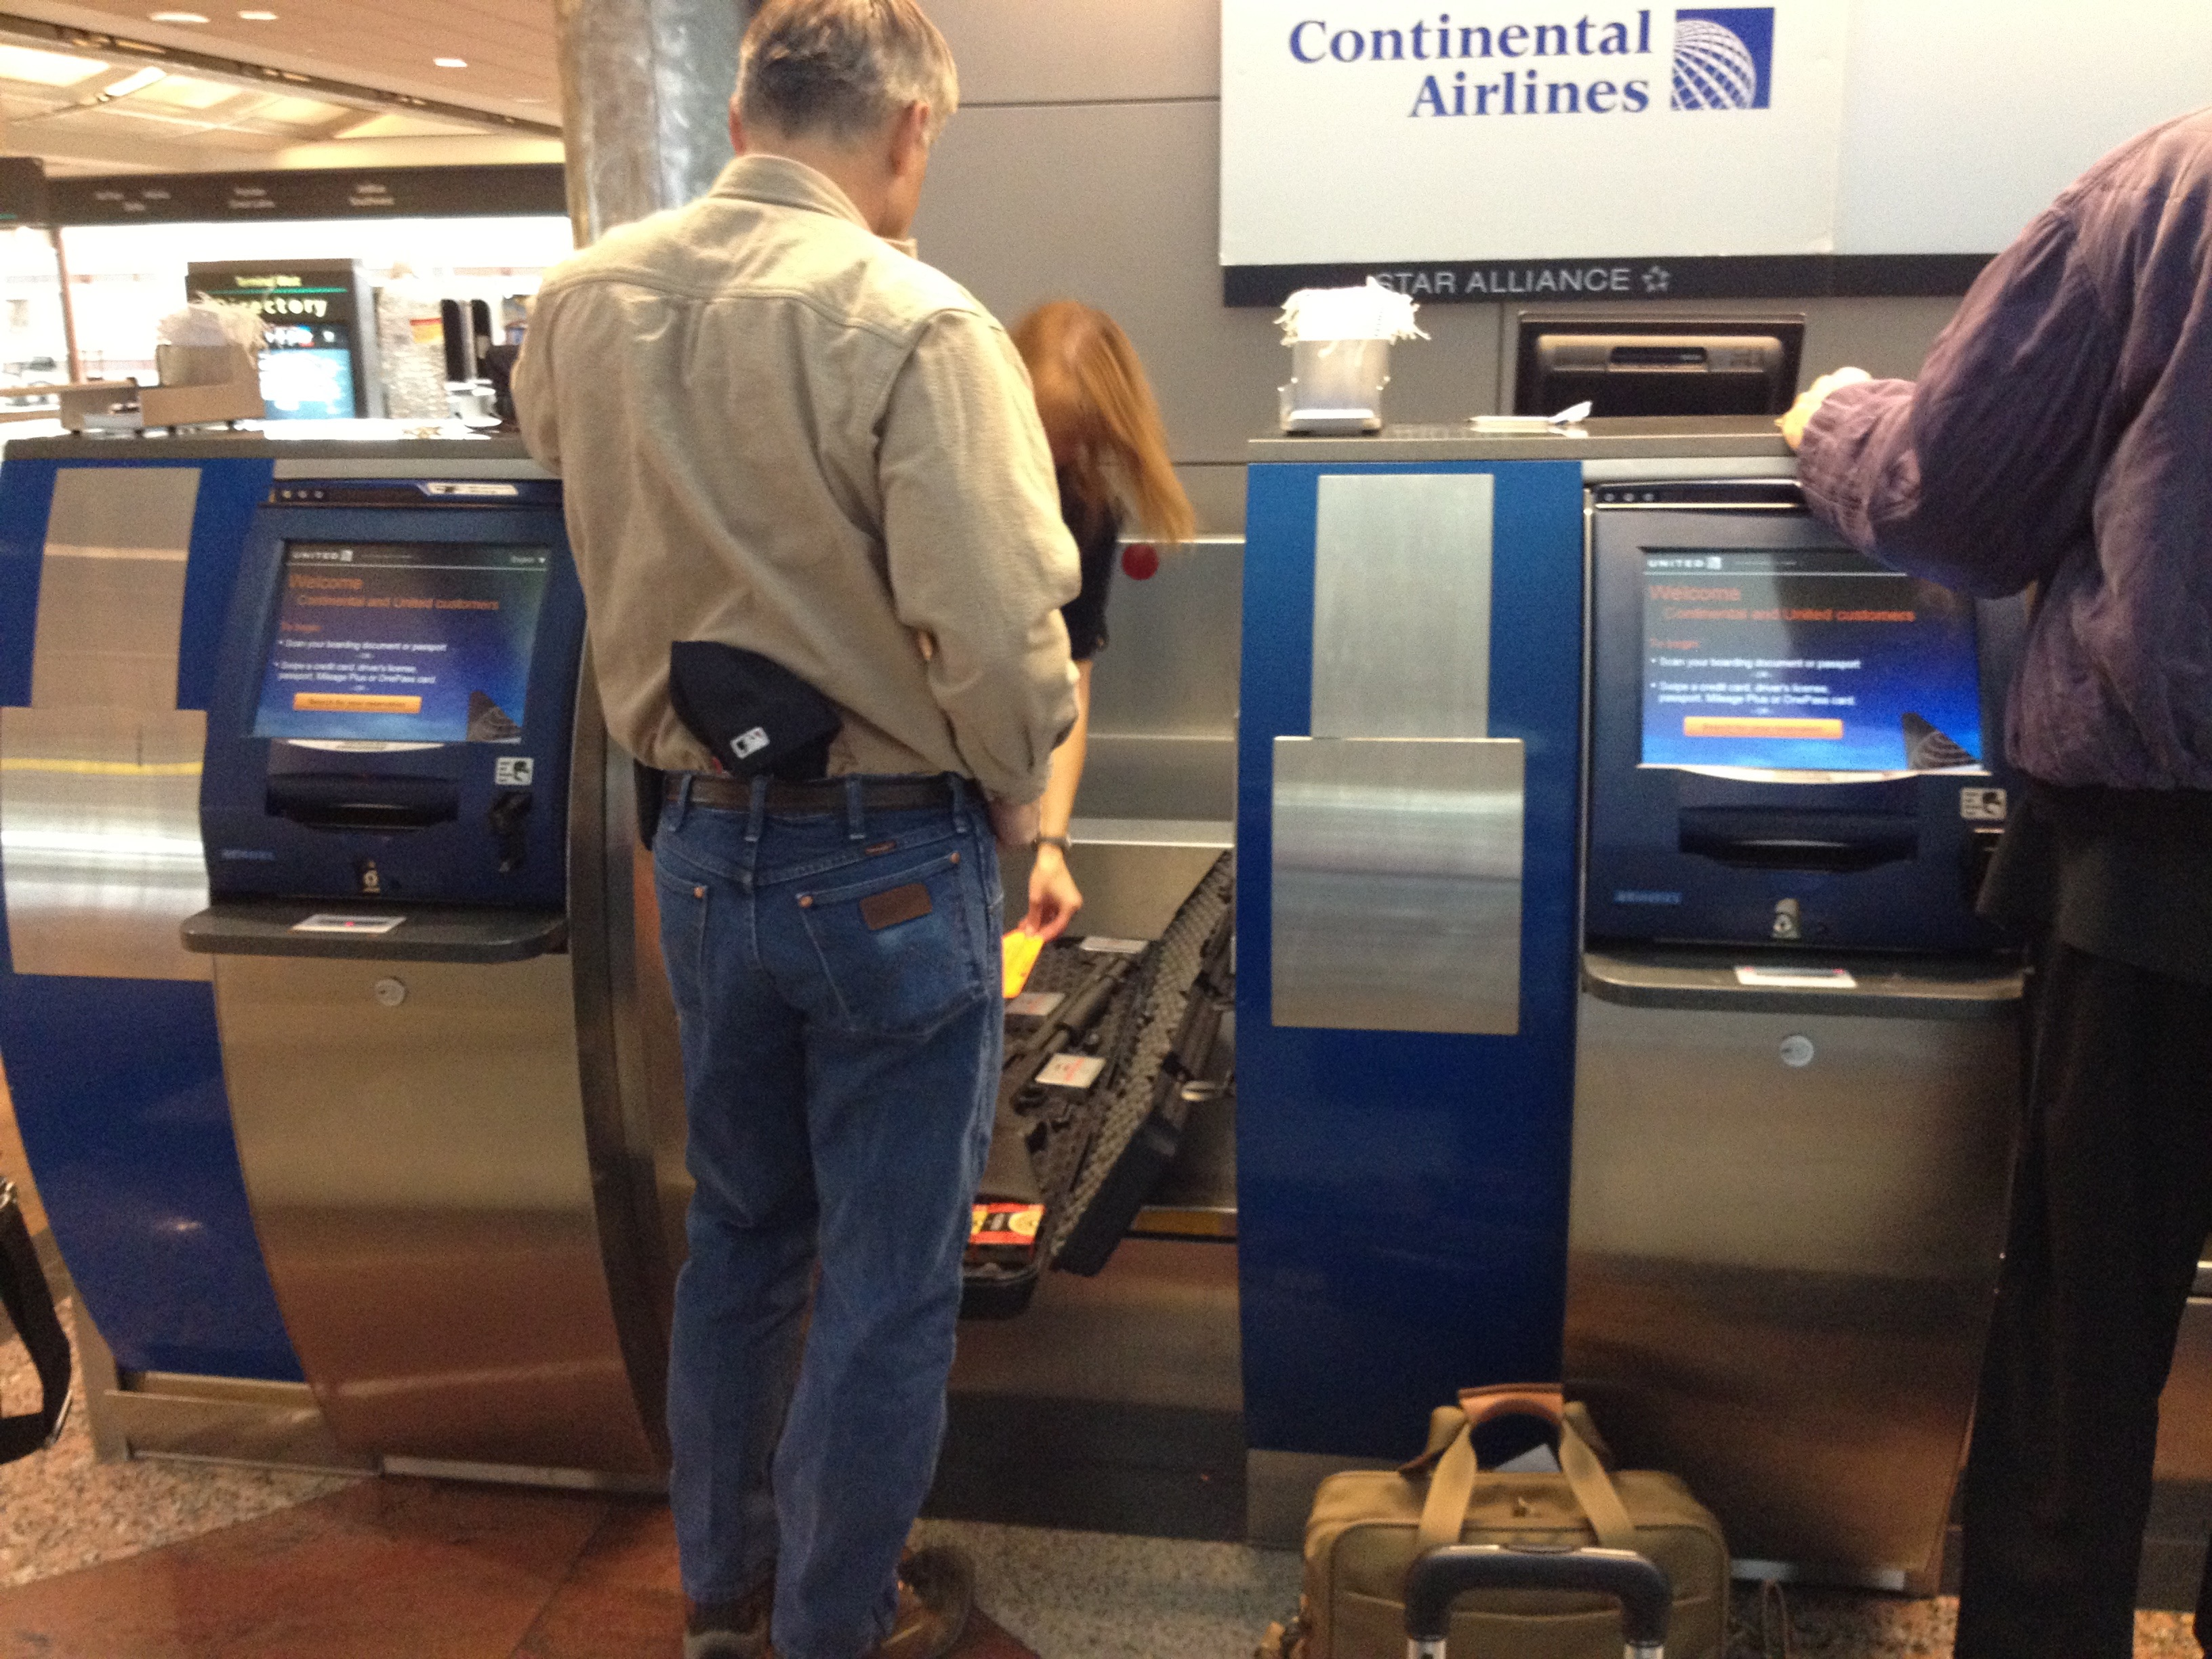 Why Are More Guns Showing Up At Airports?